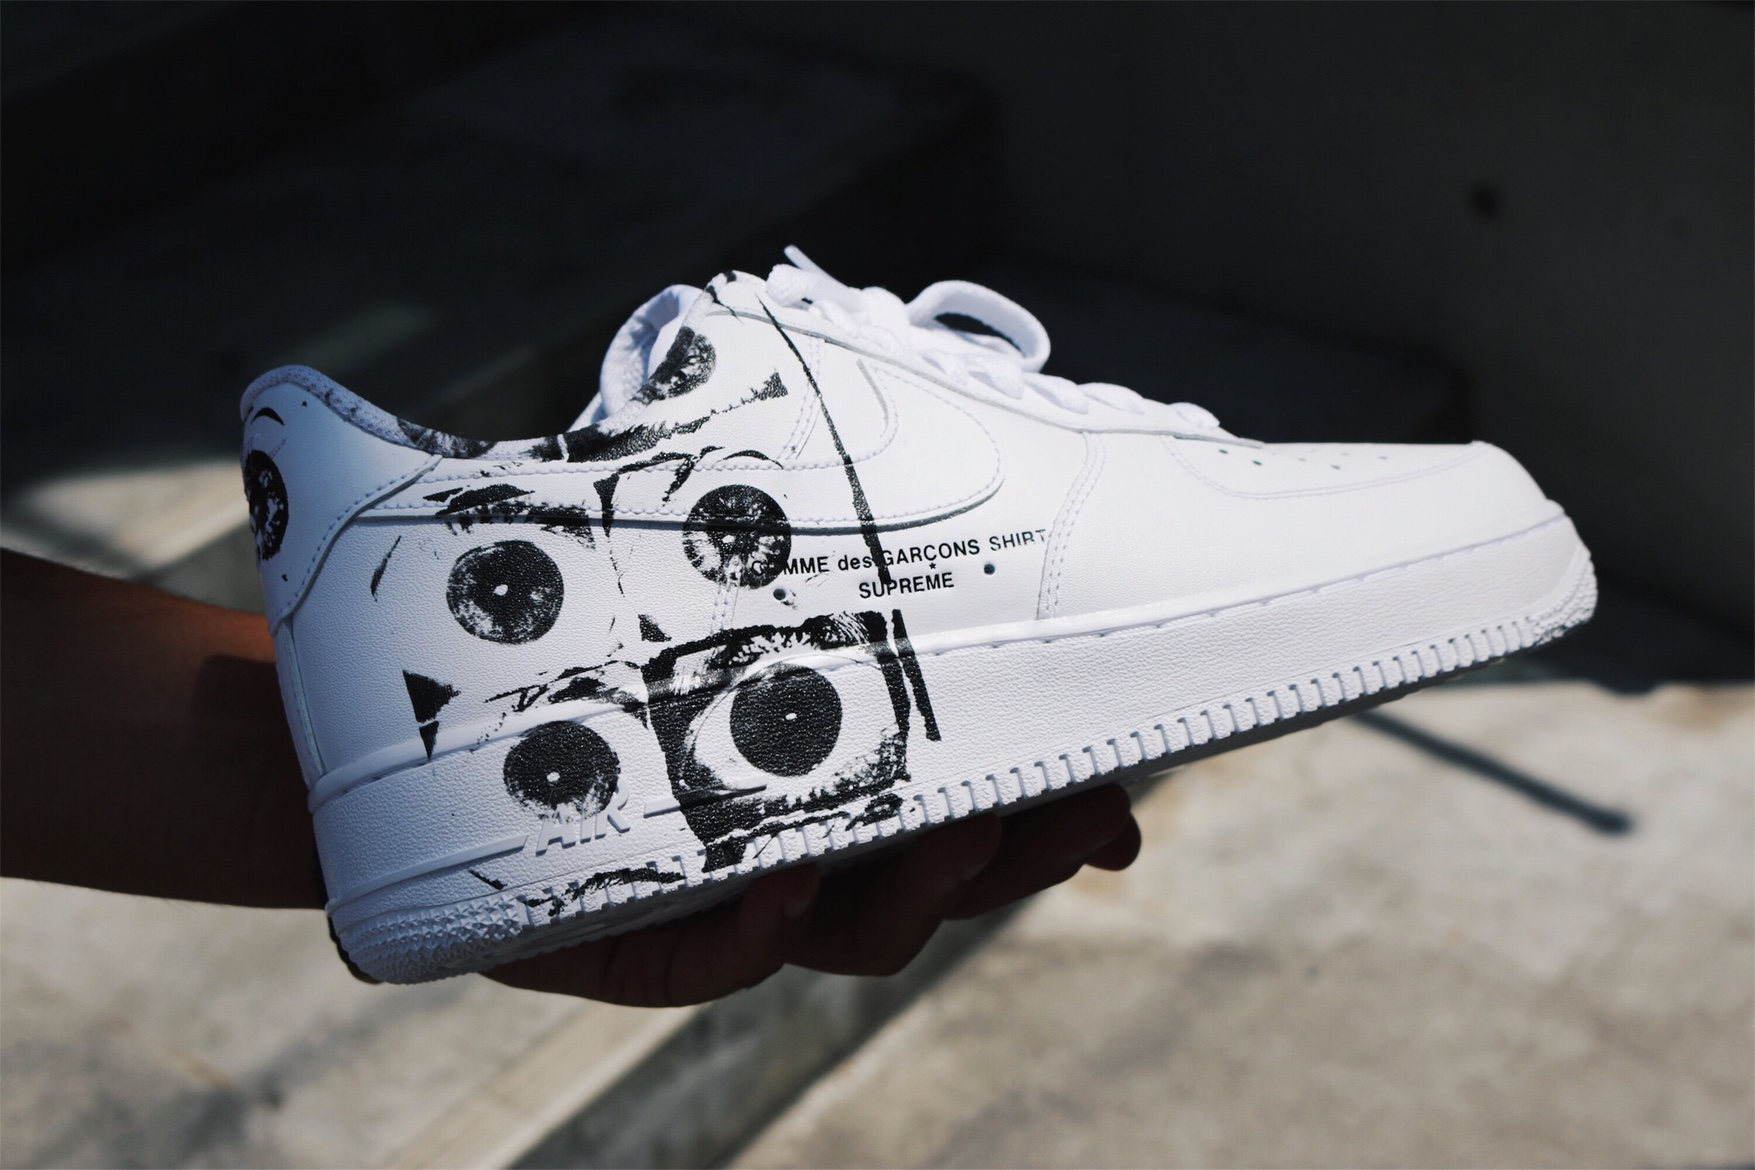 Air by the Box: Historien bag Nike Air Force 1 og de ti bedste modeller nogensinde